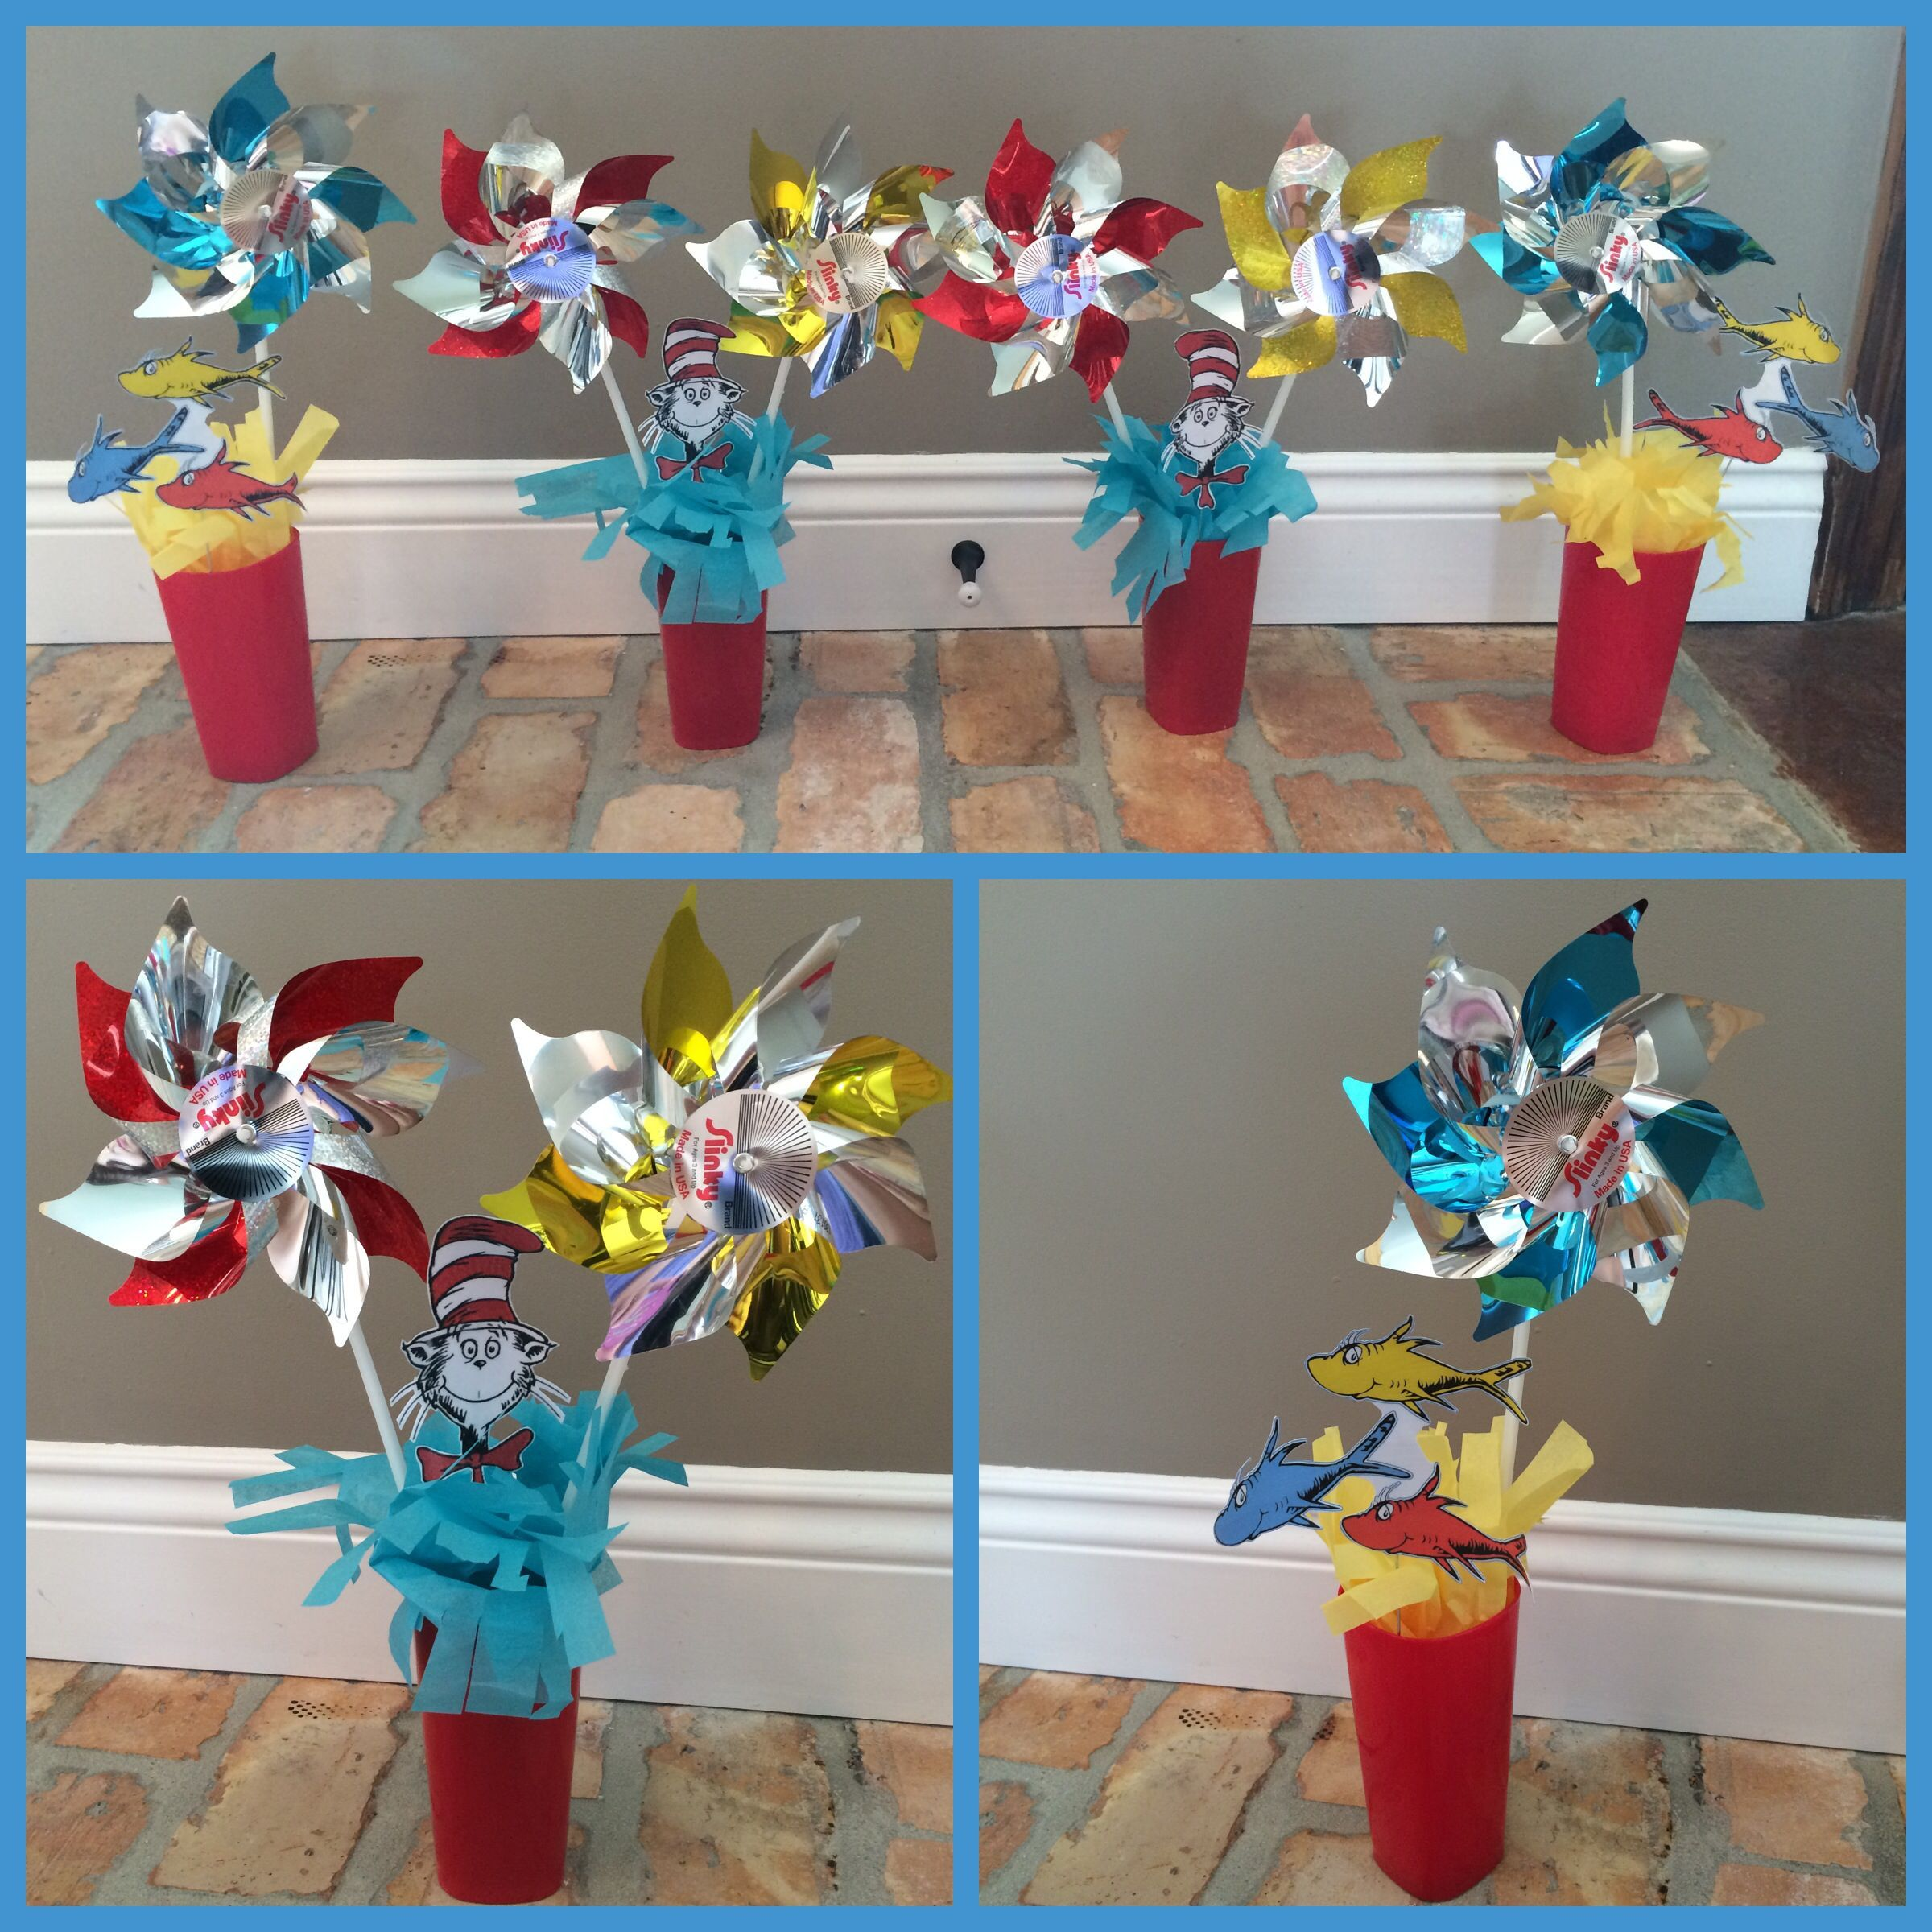 DIY Dr Seuss Birthday Party Cake Table Decorations Using Pinwheels Tissue Paper Tumbler Glasses Centerpieces Cat In The Hat 1st